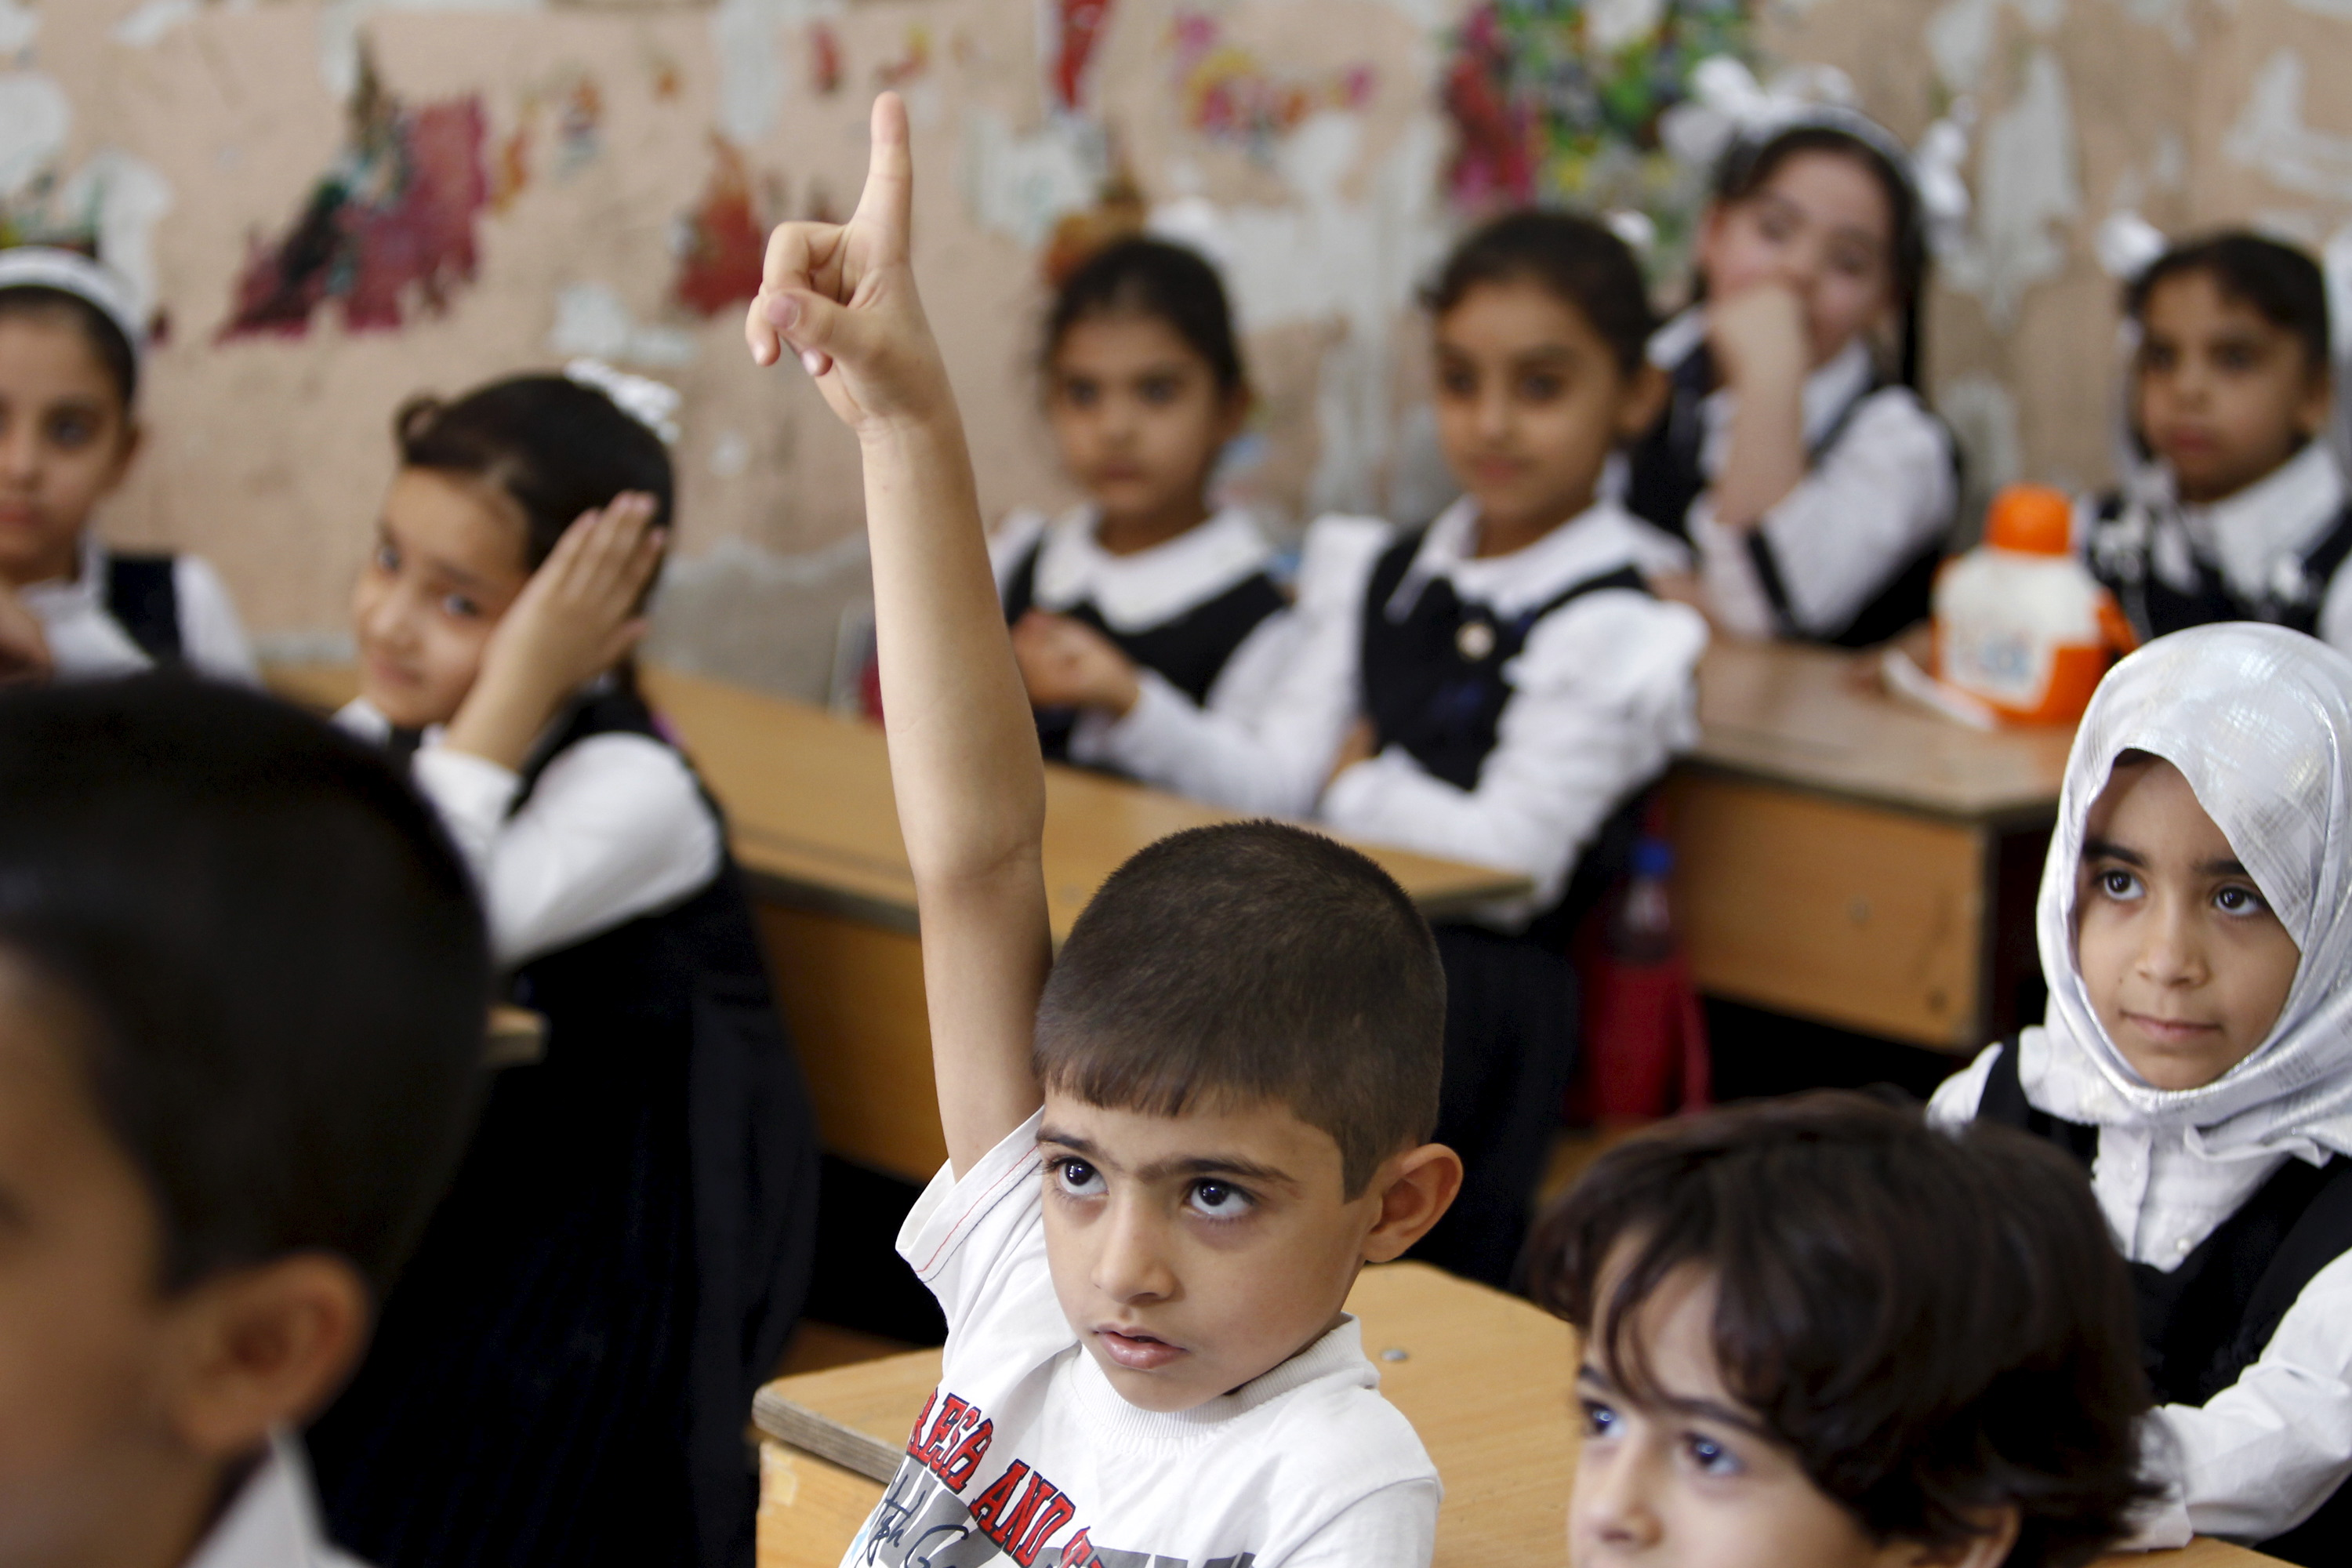 A student raises his hand while attending the first day of the new school term at a primary school in Baghdad, October 18, 2015.